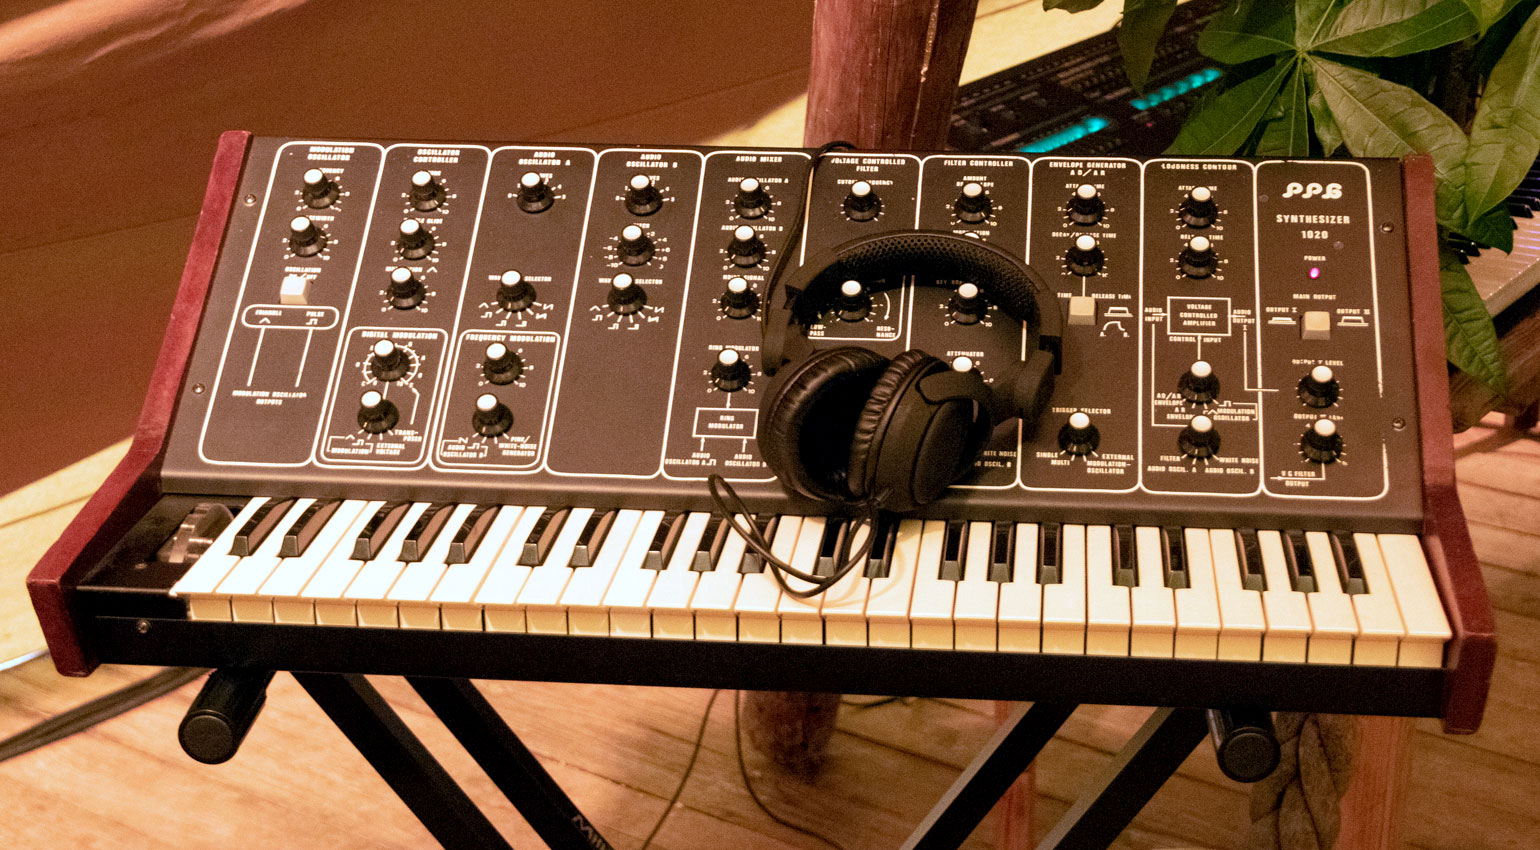 PPG Synthesizer 1020